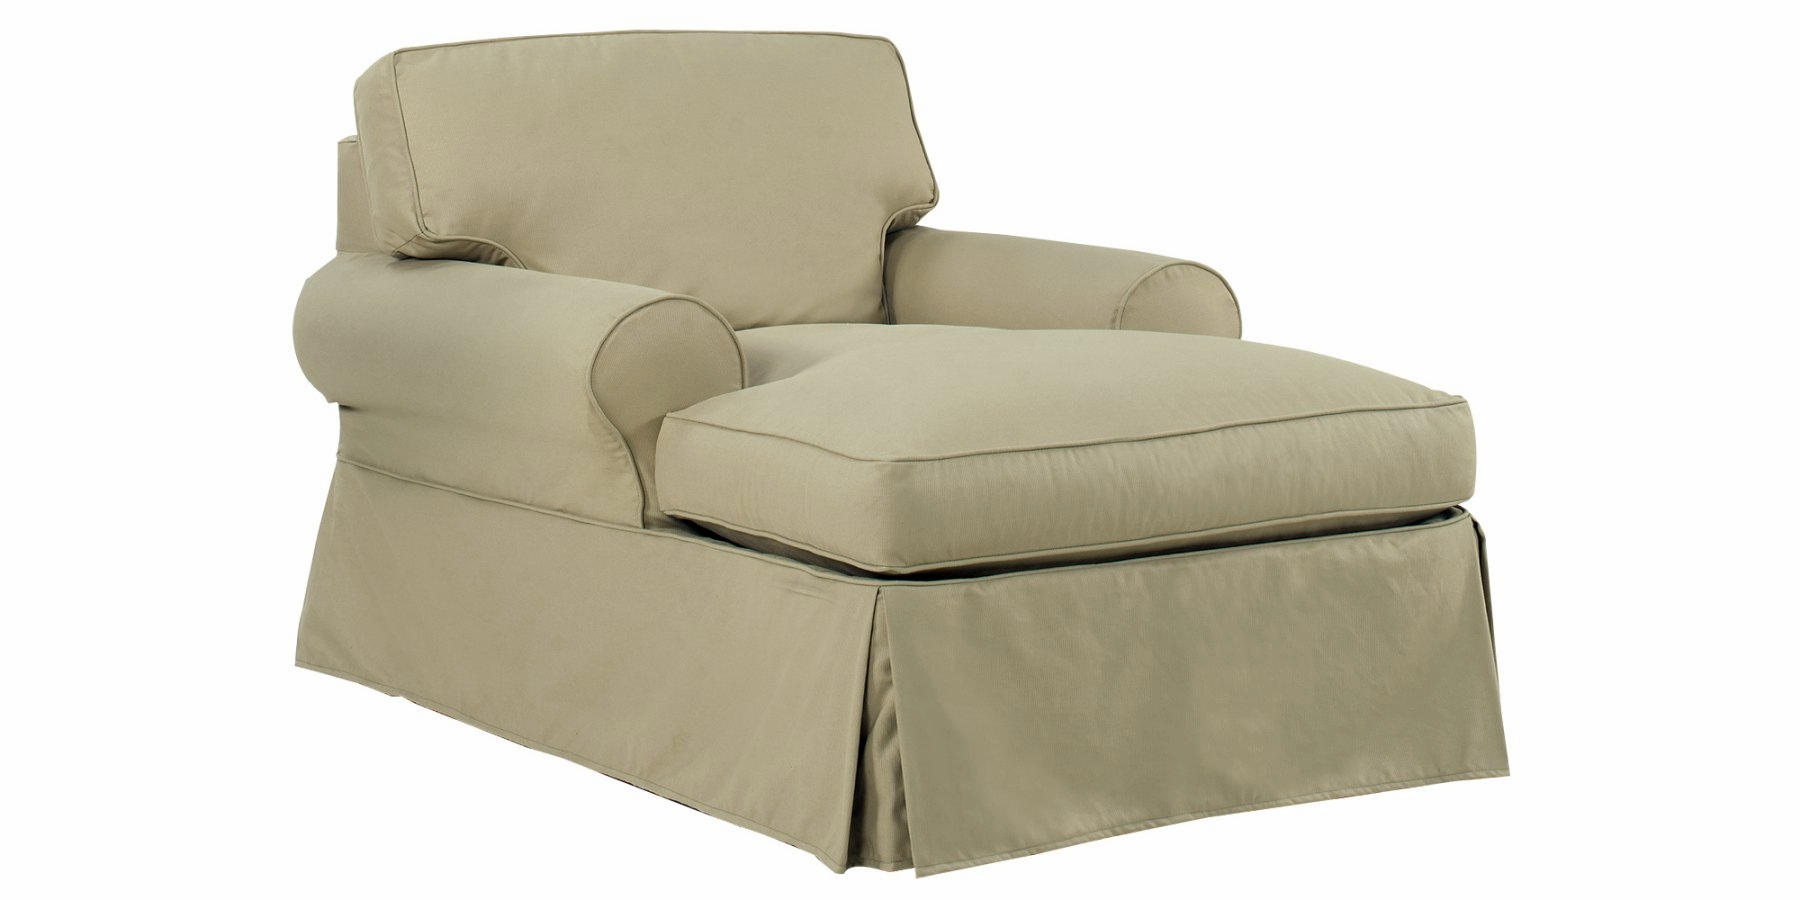 Comfortable Slipcovered Furniture, Slipcover Sofas, Couches